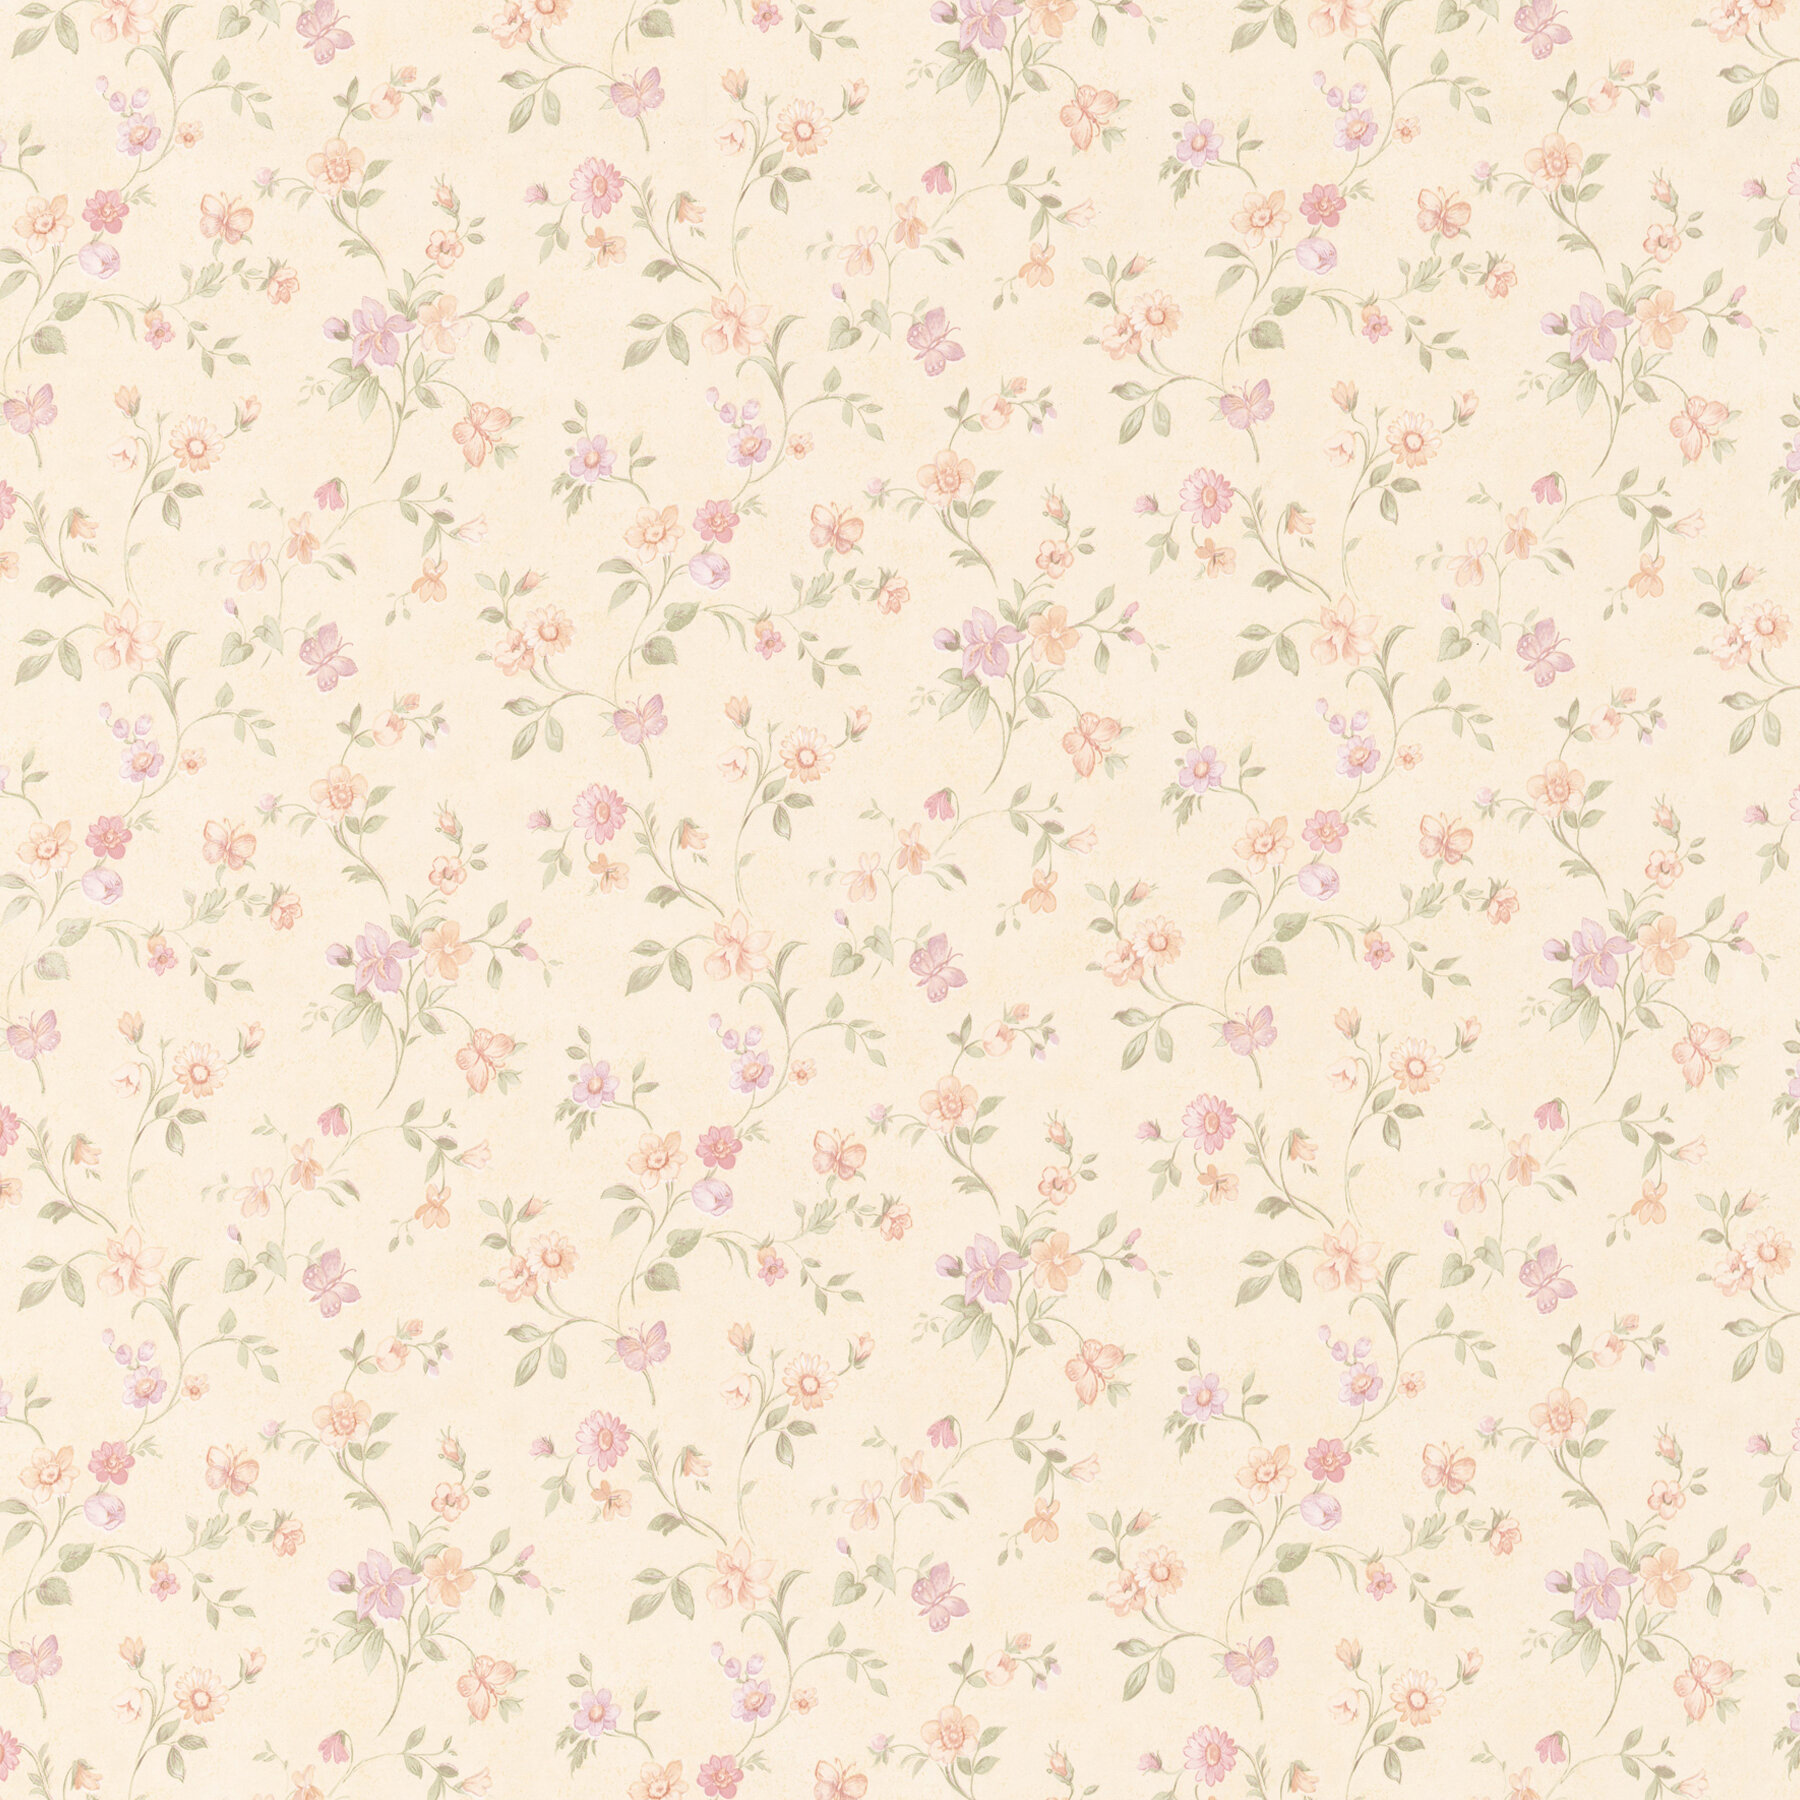 Brewster Home Fashions Cindy Floral Trail 33 X 20 5 Wallpaper